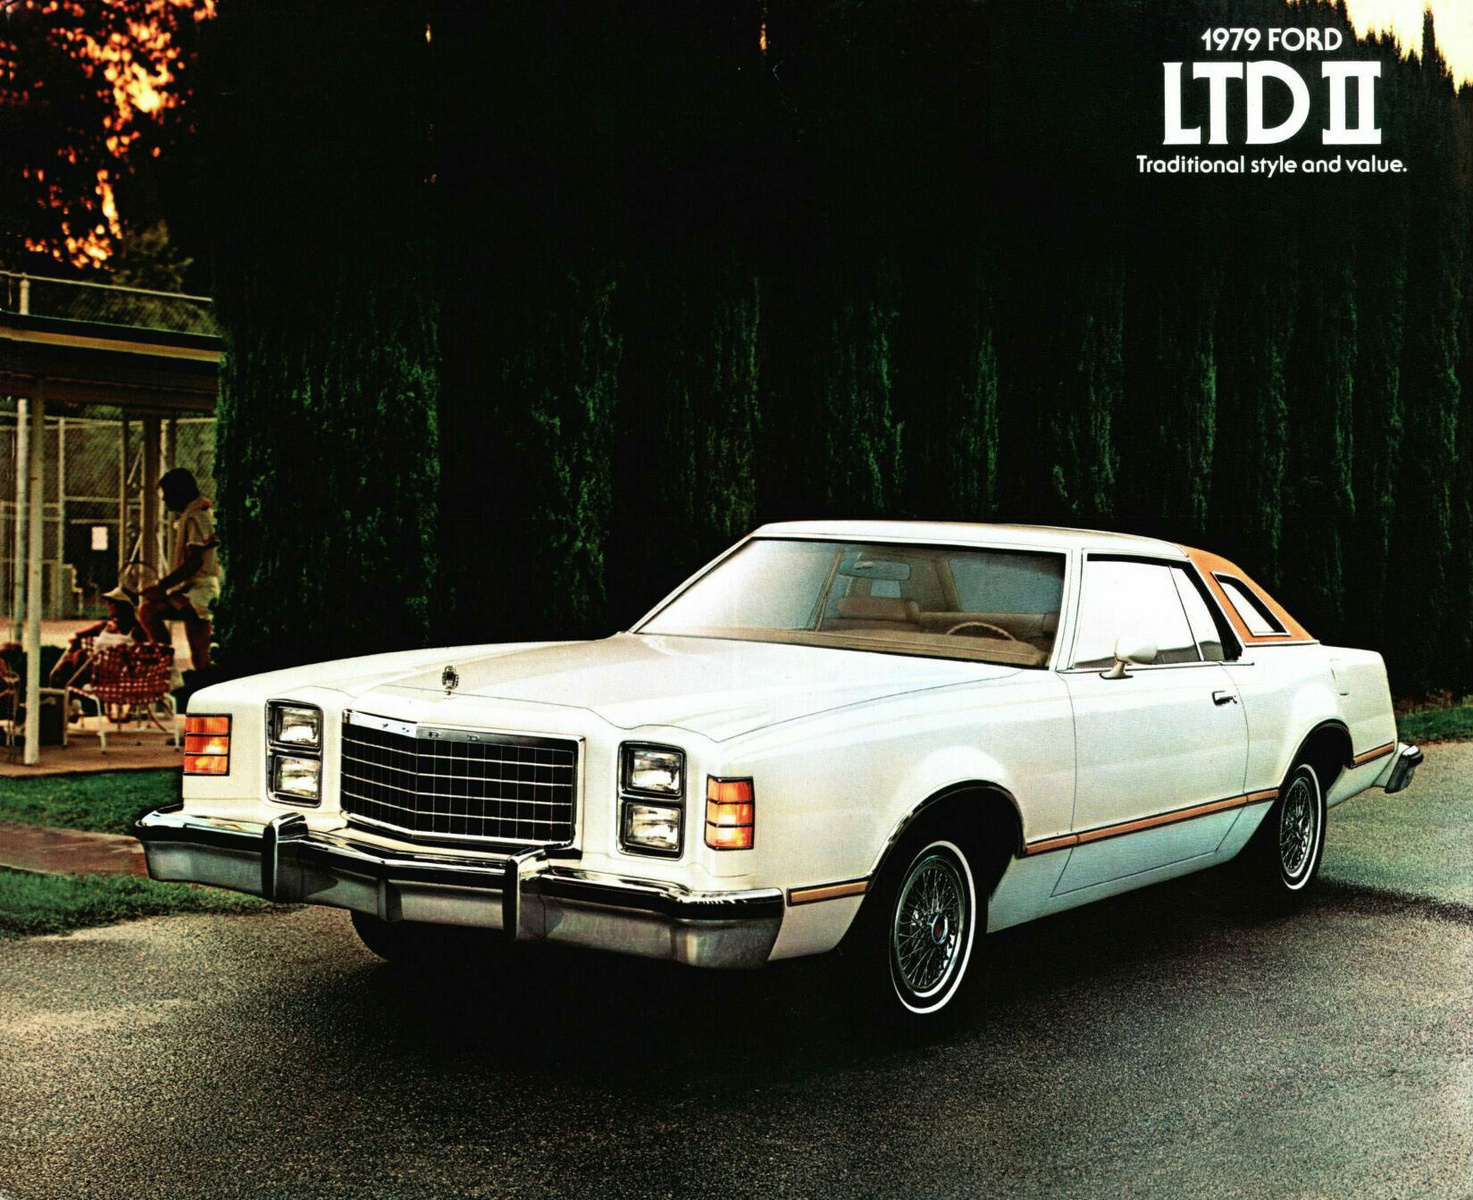 hight resolution of  and one more site http www motorstown com imgs 38885 ford ltd ii 7 html this is a 1979 cant see the grille on your car